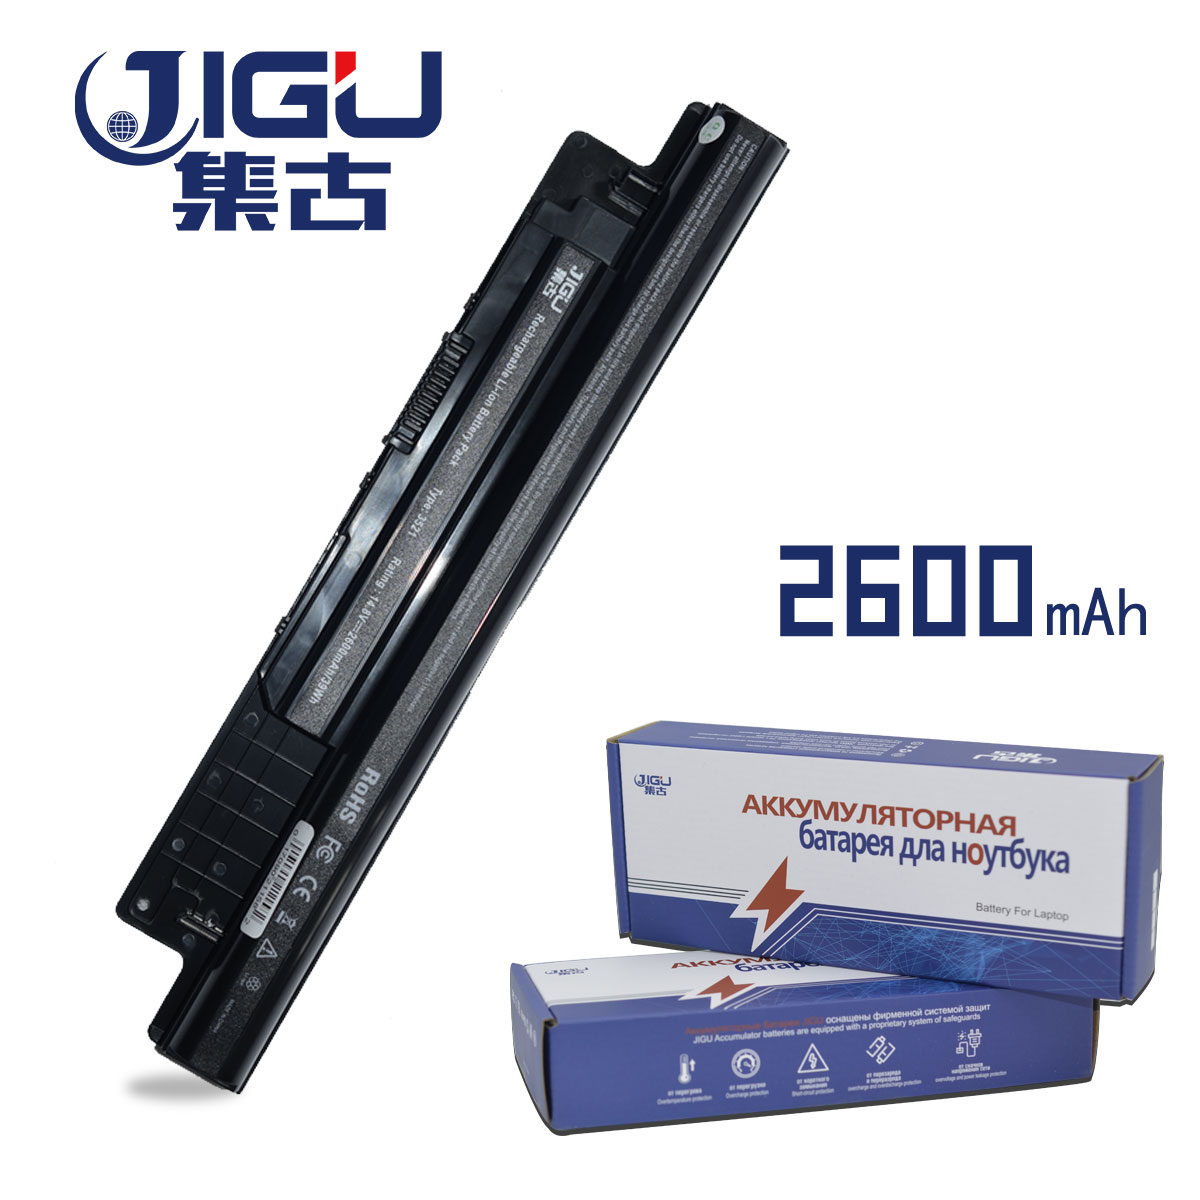 JIGU Laptop Battery For <font><b>Dell</b></font> 6K73M N121Y For Inspiron 3521 N3521 Series 3531 RP1F7 XCMRD YGMTN For Latitude 3440 <font><b>3540</b></font> E3440 image